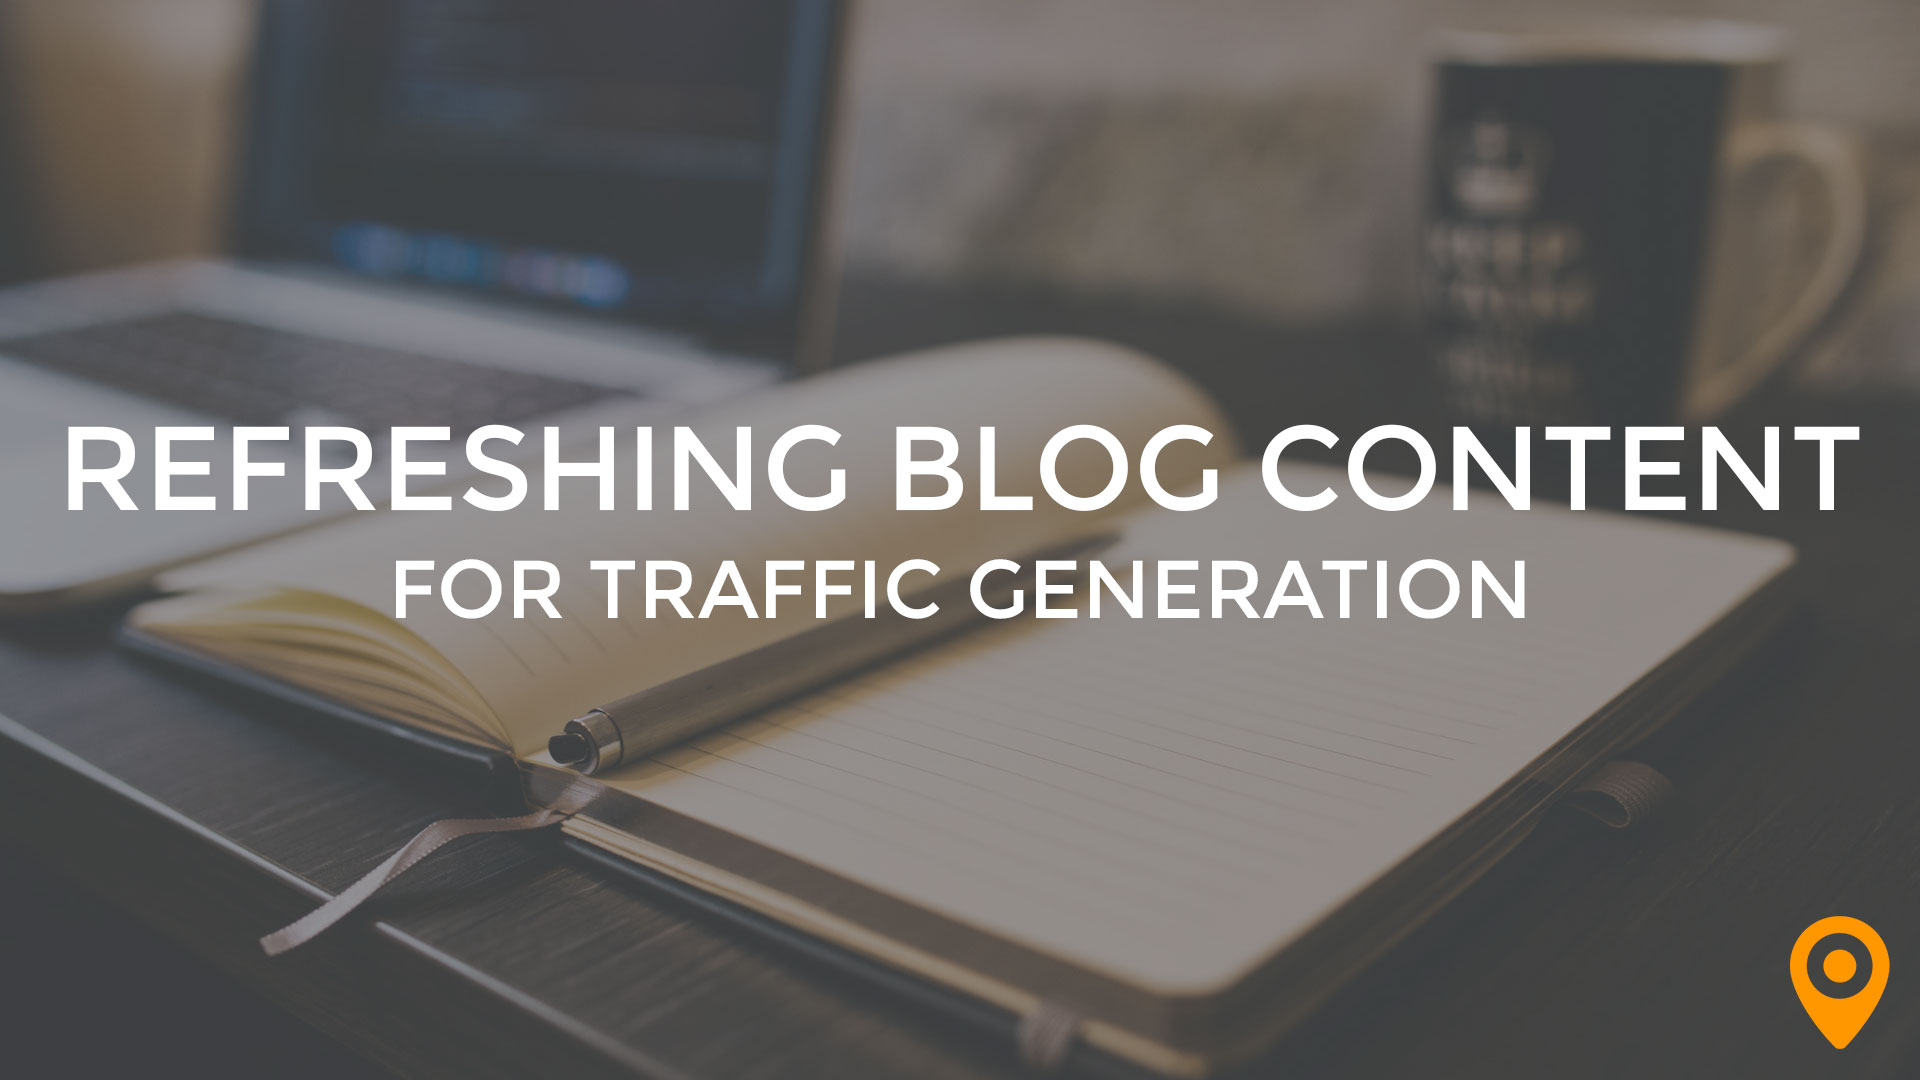 Refreshing Blog Content for Traffic Generation